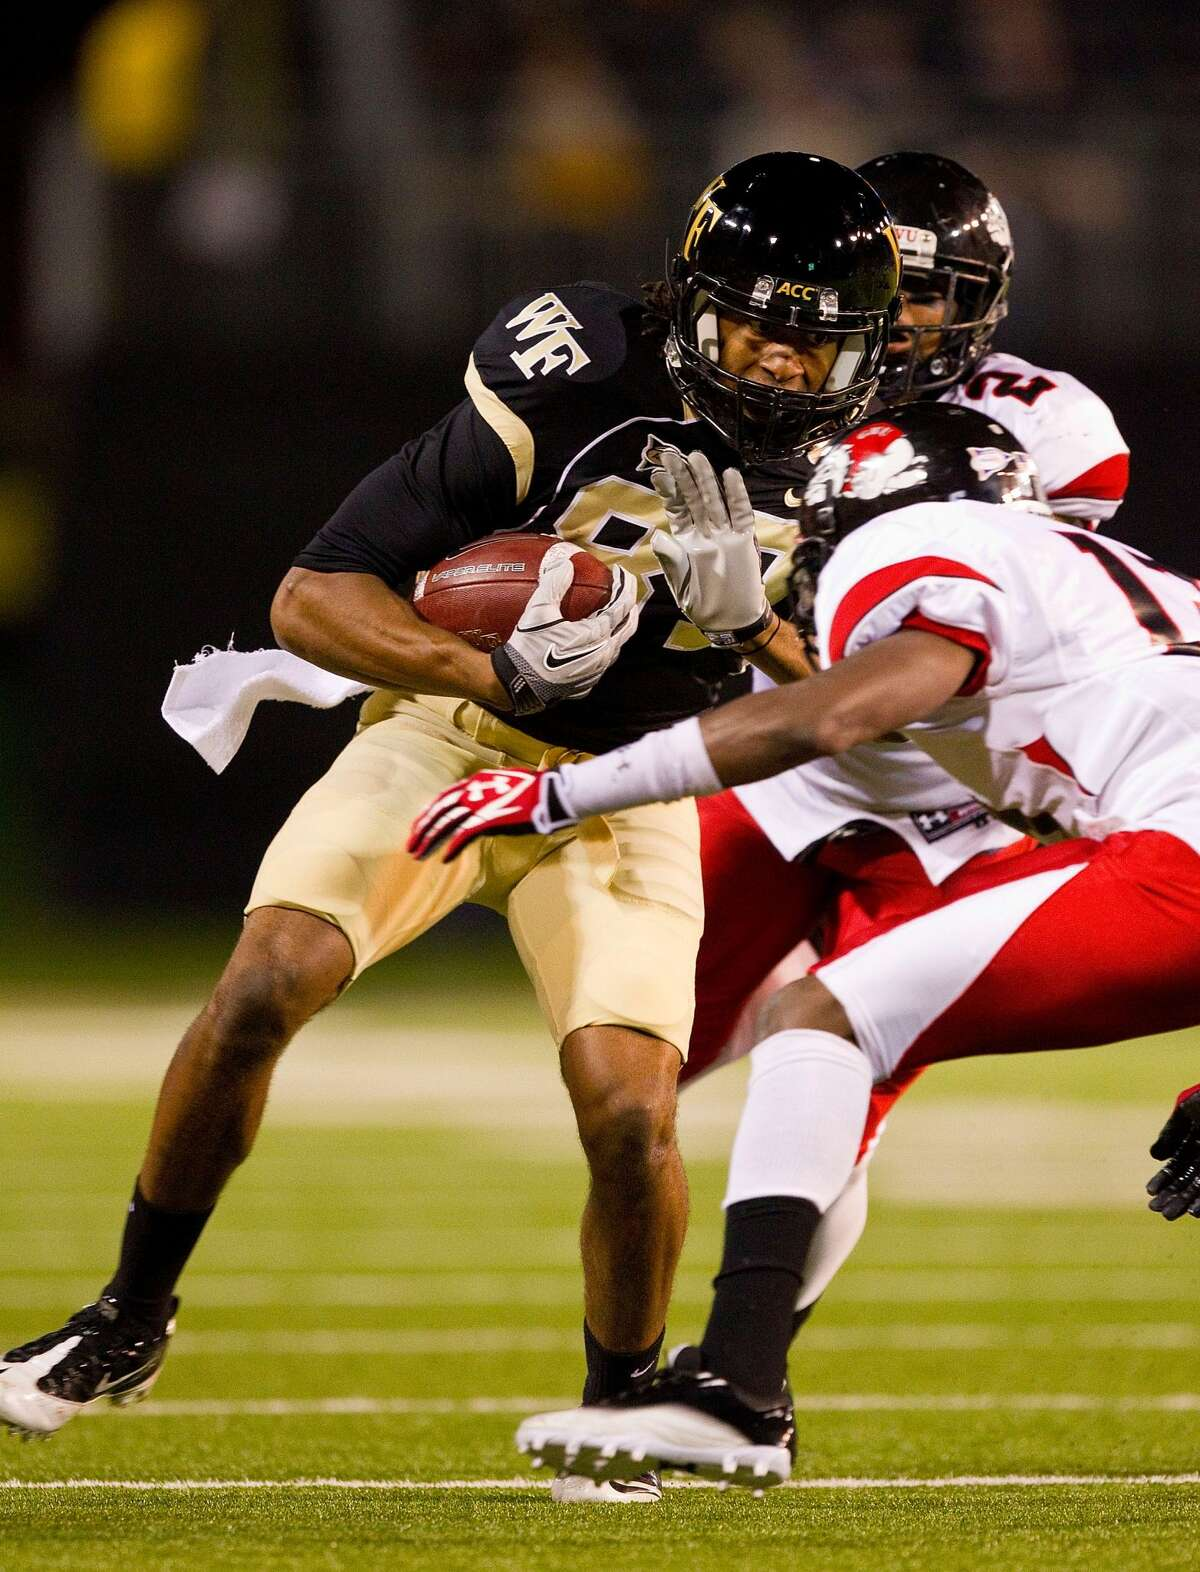 WINSTON SALEM, NC - SEPTEMBER 17: Matt James #87 of the Wake Forest Demon Deacons braces for a hit from Kamar Morrison #13 of the Gardner-Webb Bulldogs at BB&T Field on September 17, 2011 in Winston Salem, North Carolina. The Demon Deacons defeated the Runnin' Bulldogs 48-5. (Photo by Brian A. Westerholt/Getty Images)